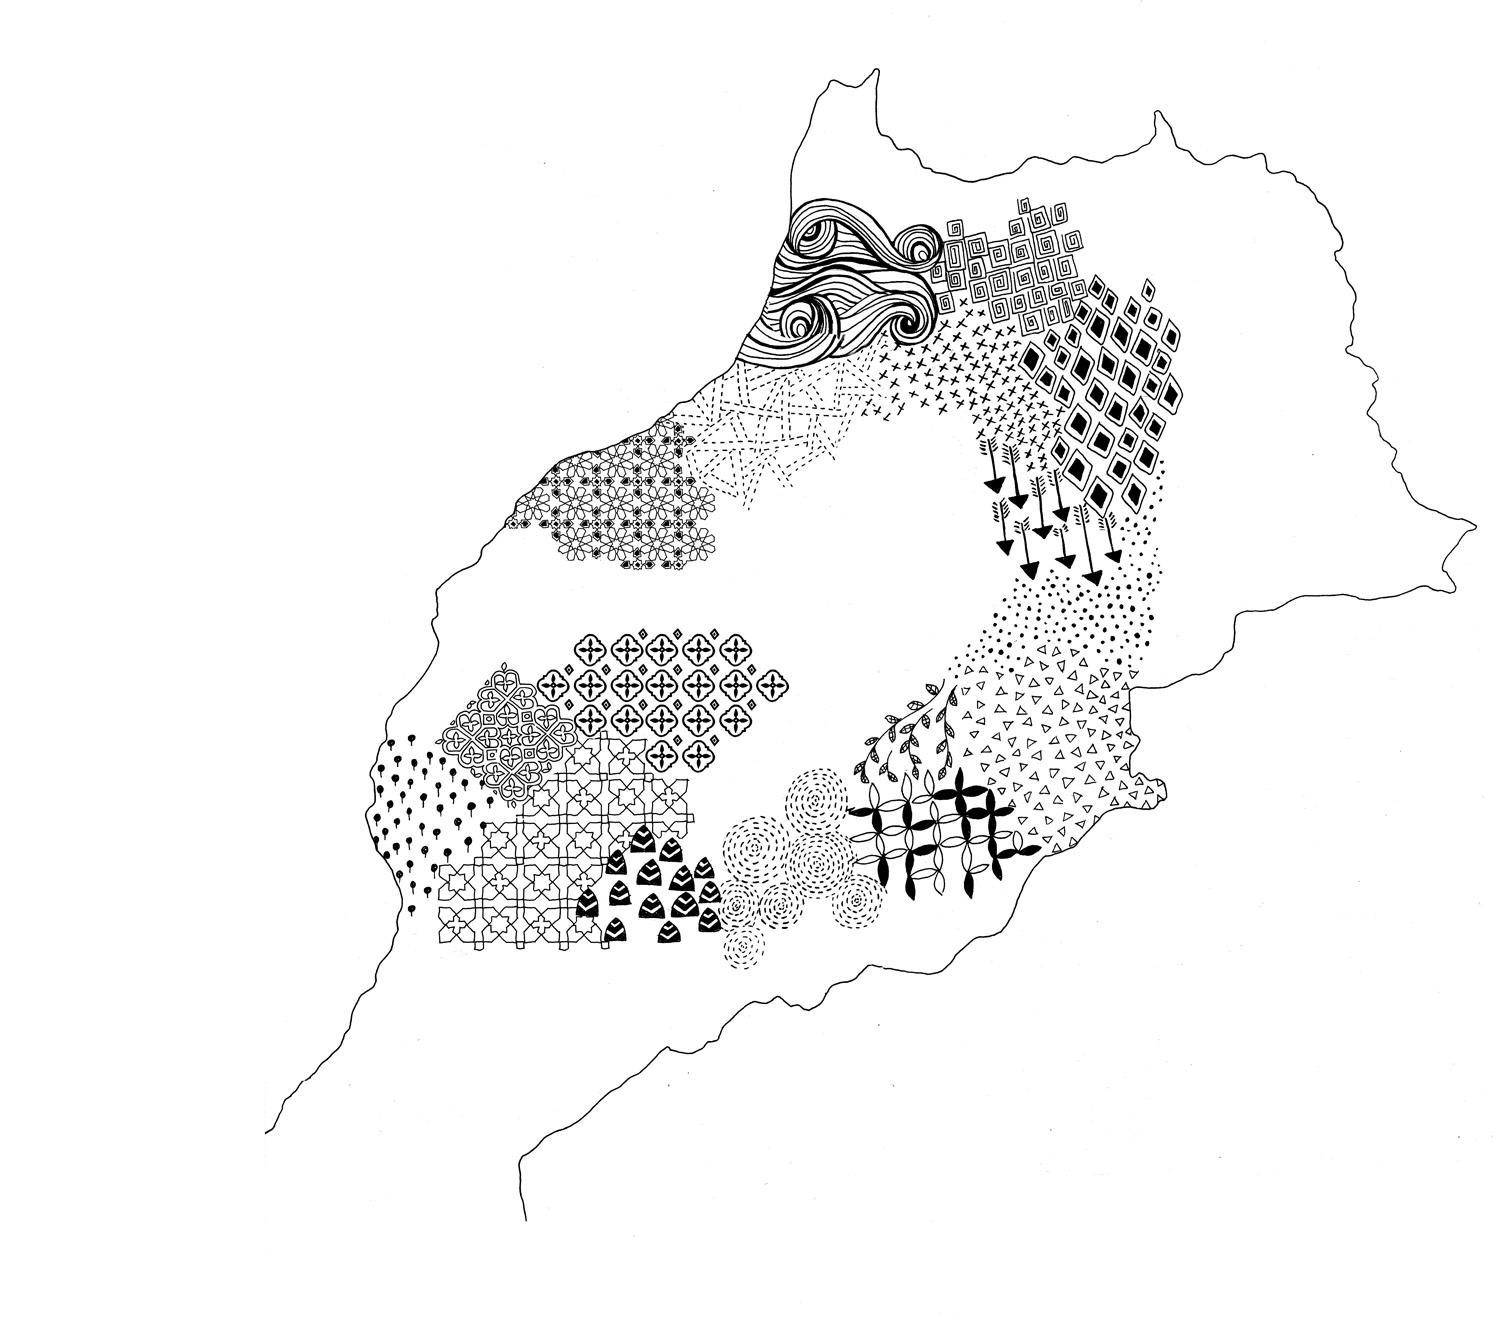 Berber Whiskey Travels: Morocco through patterns - image 2 - student project